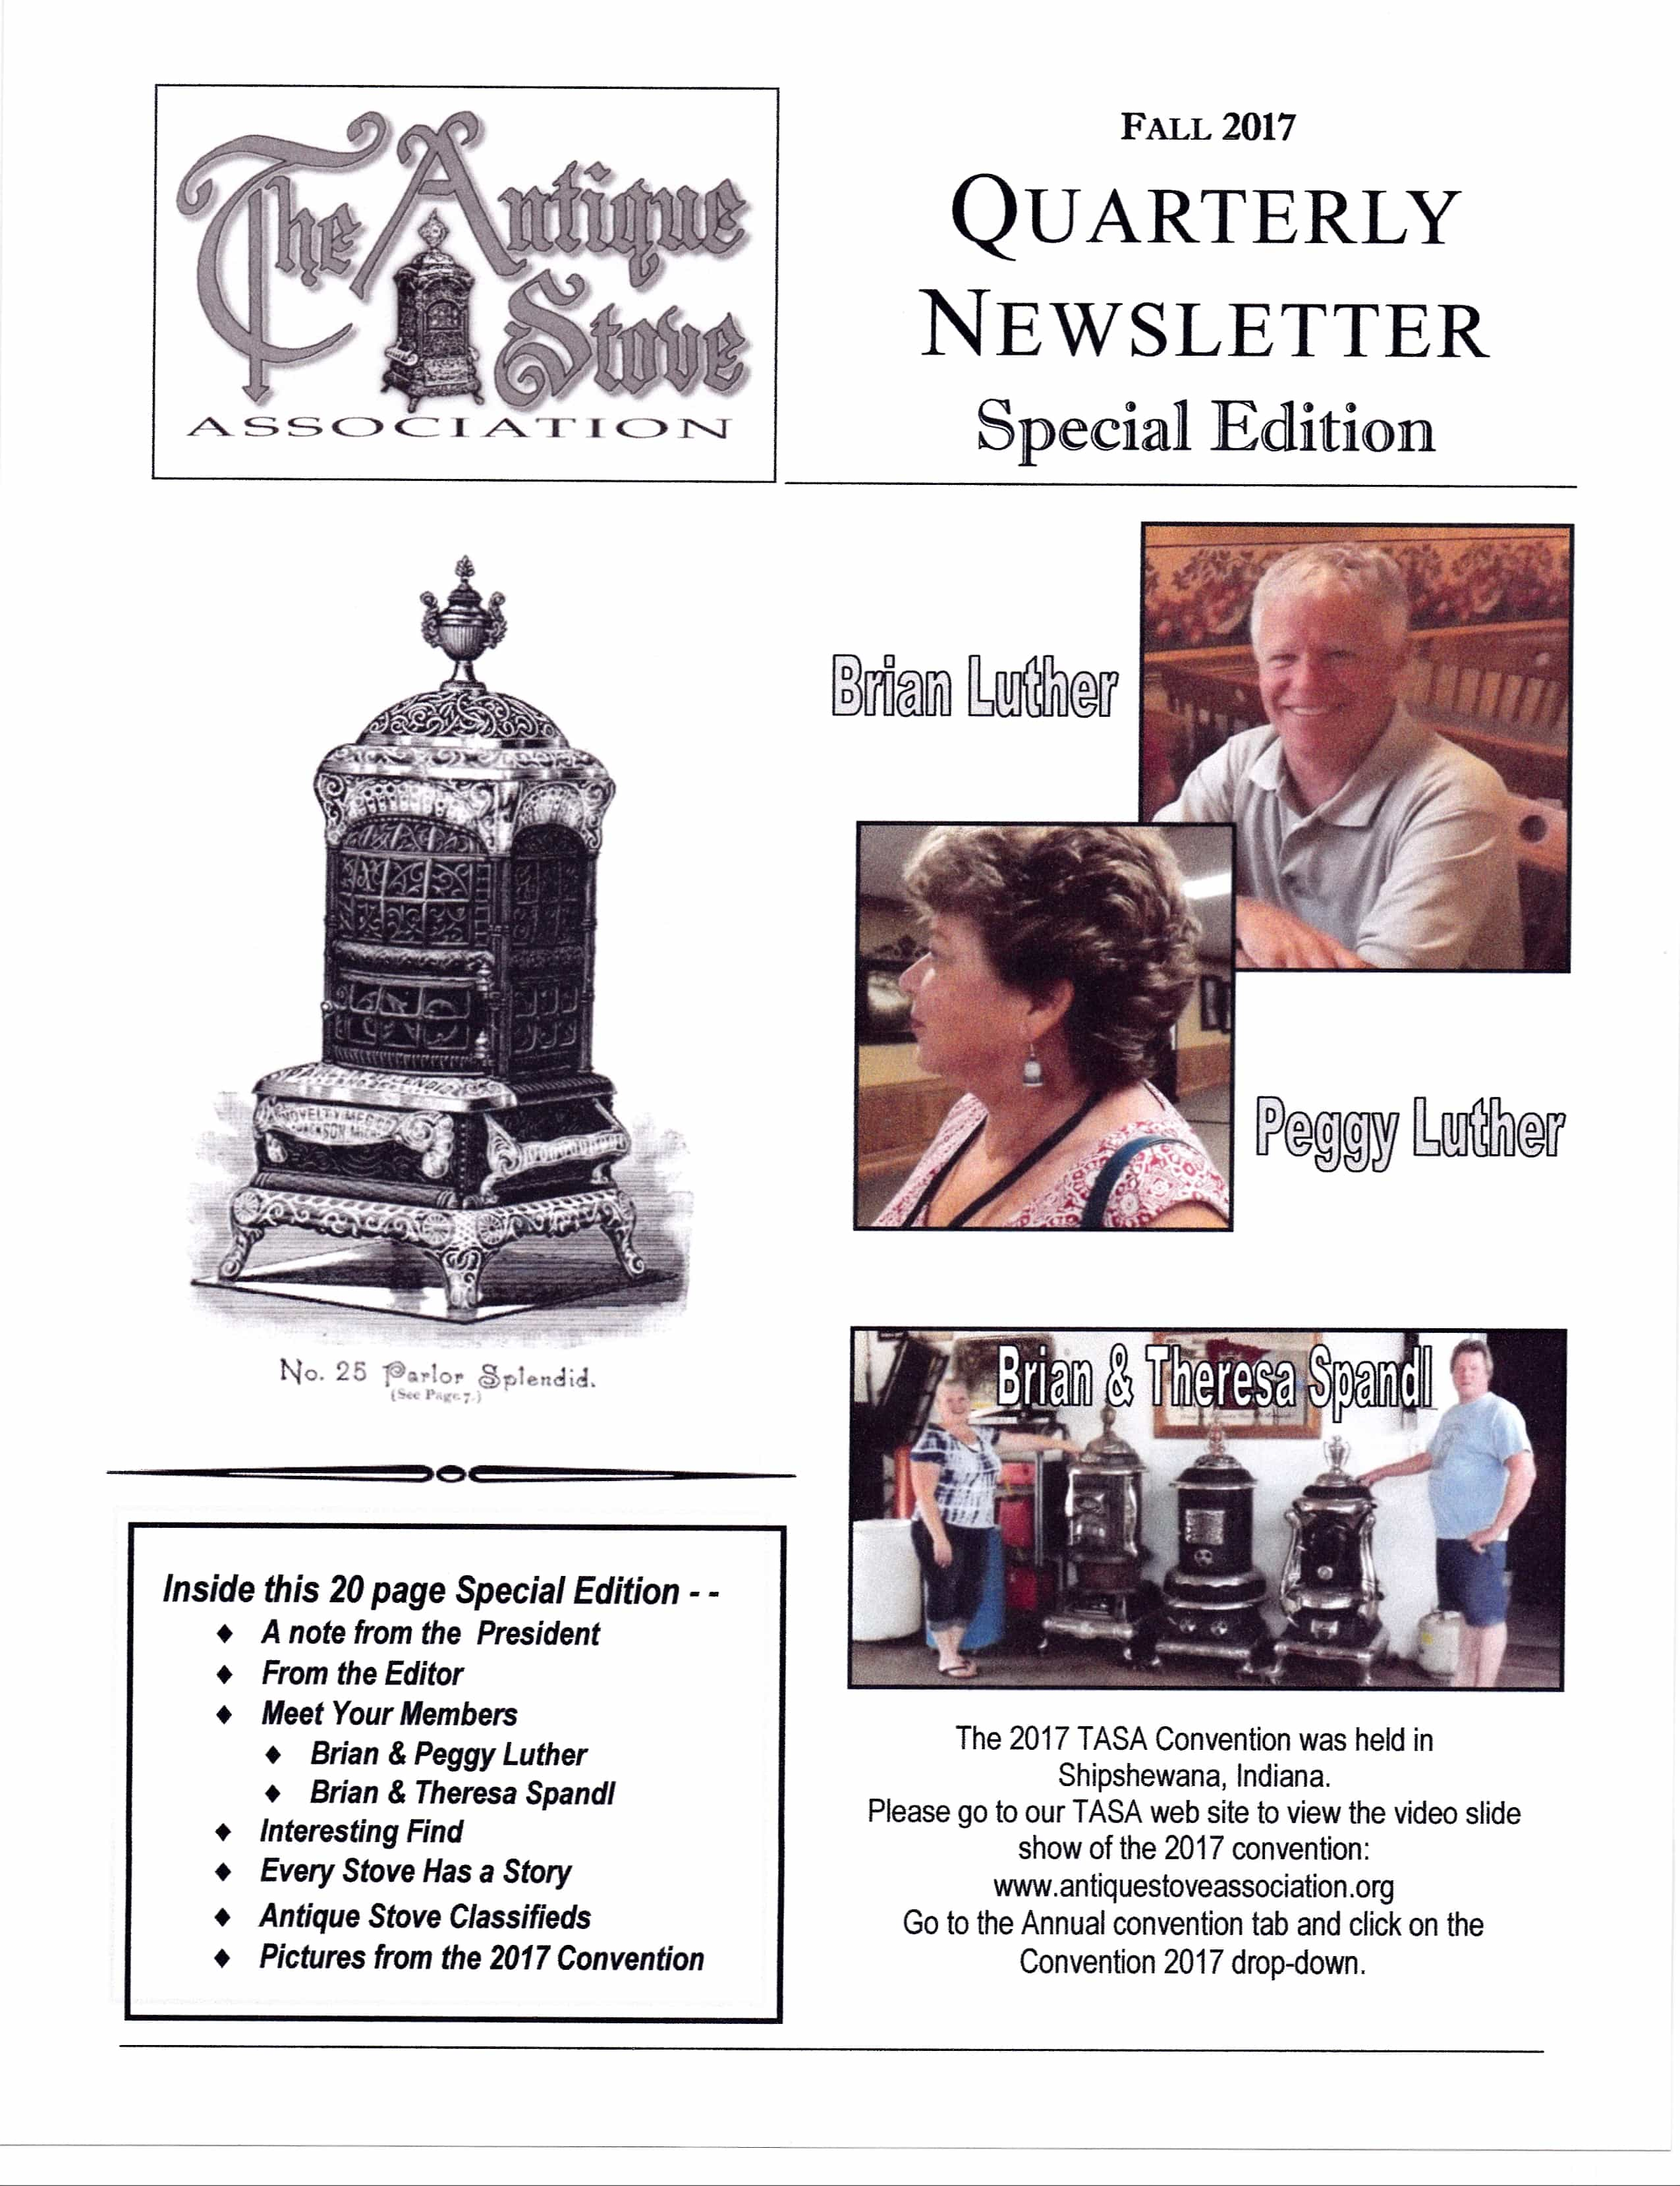 Fall Quarterly Newsletter Special Edition